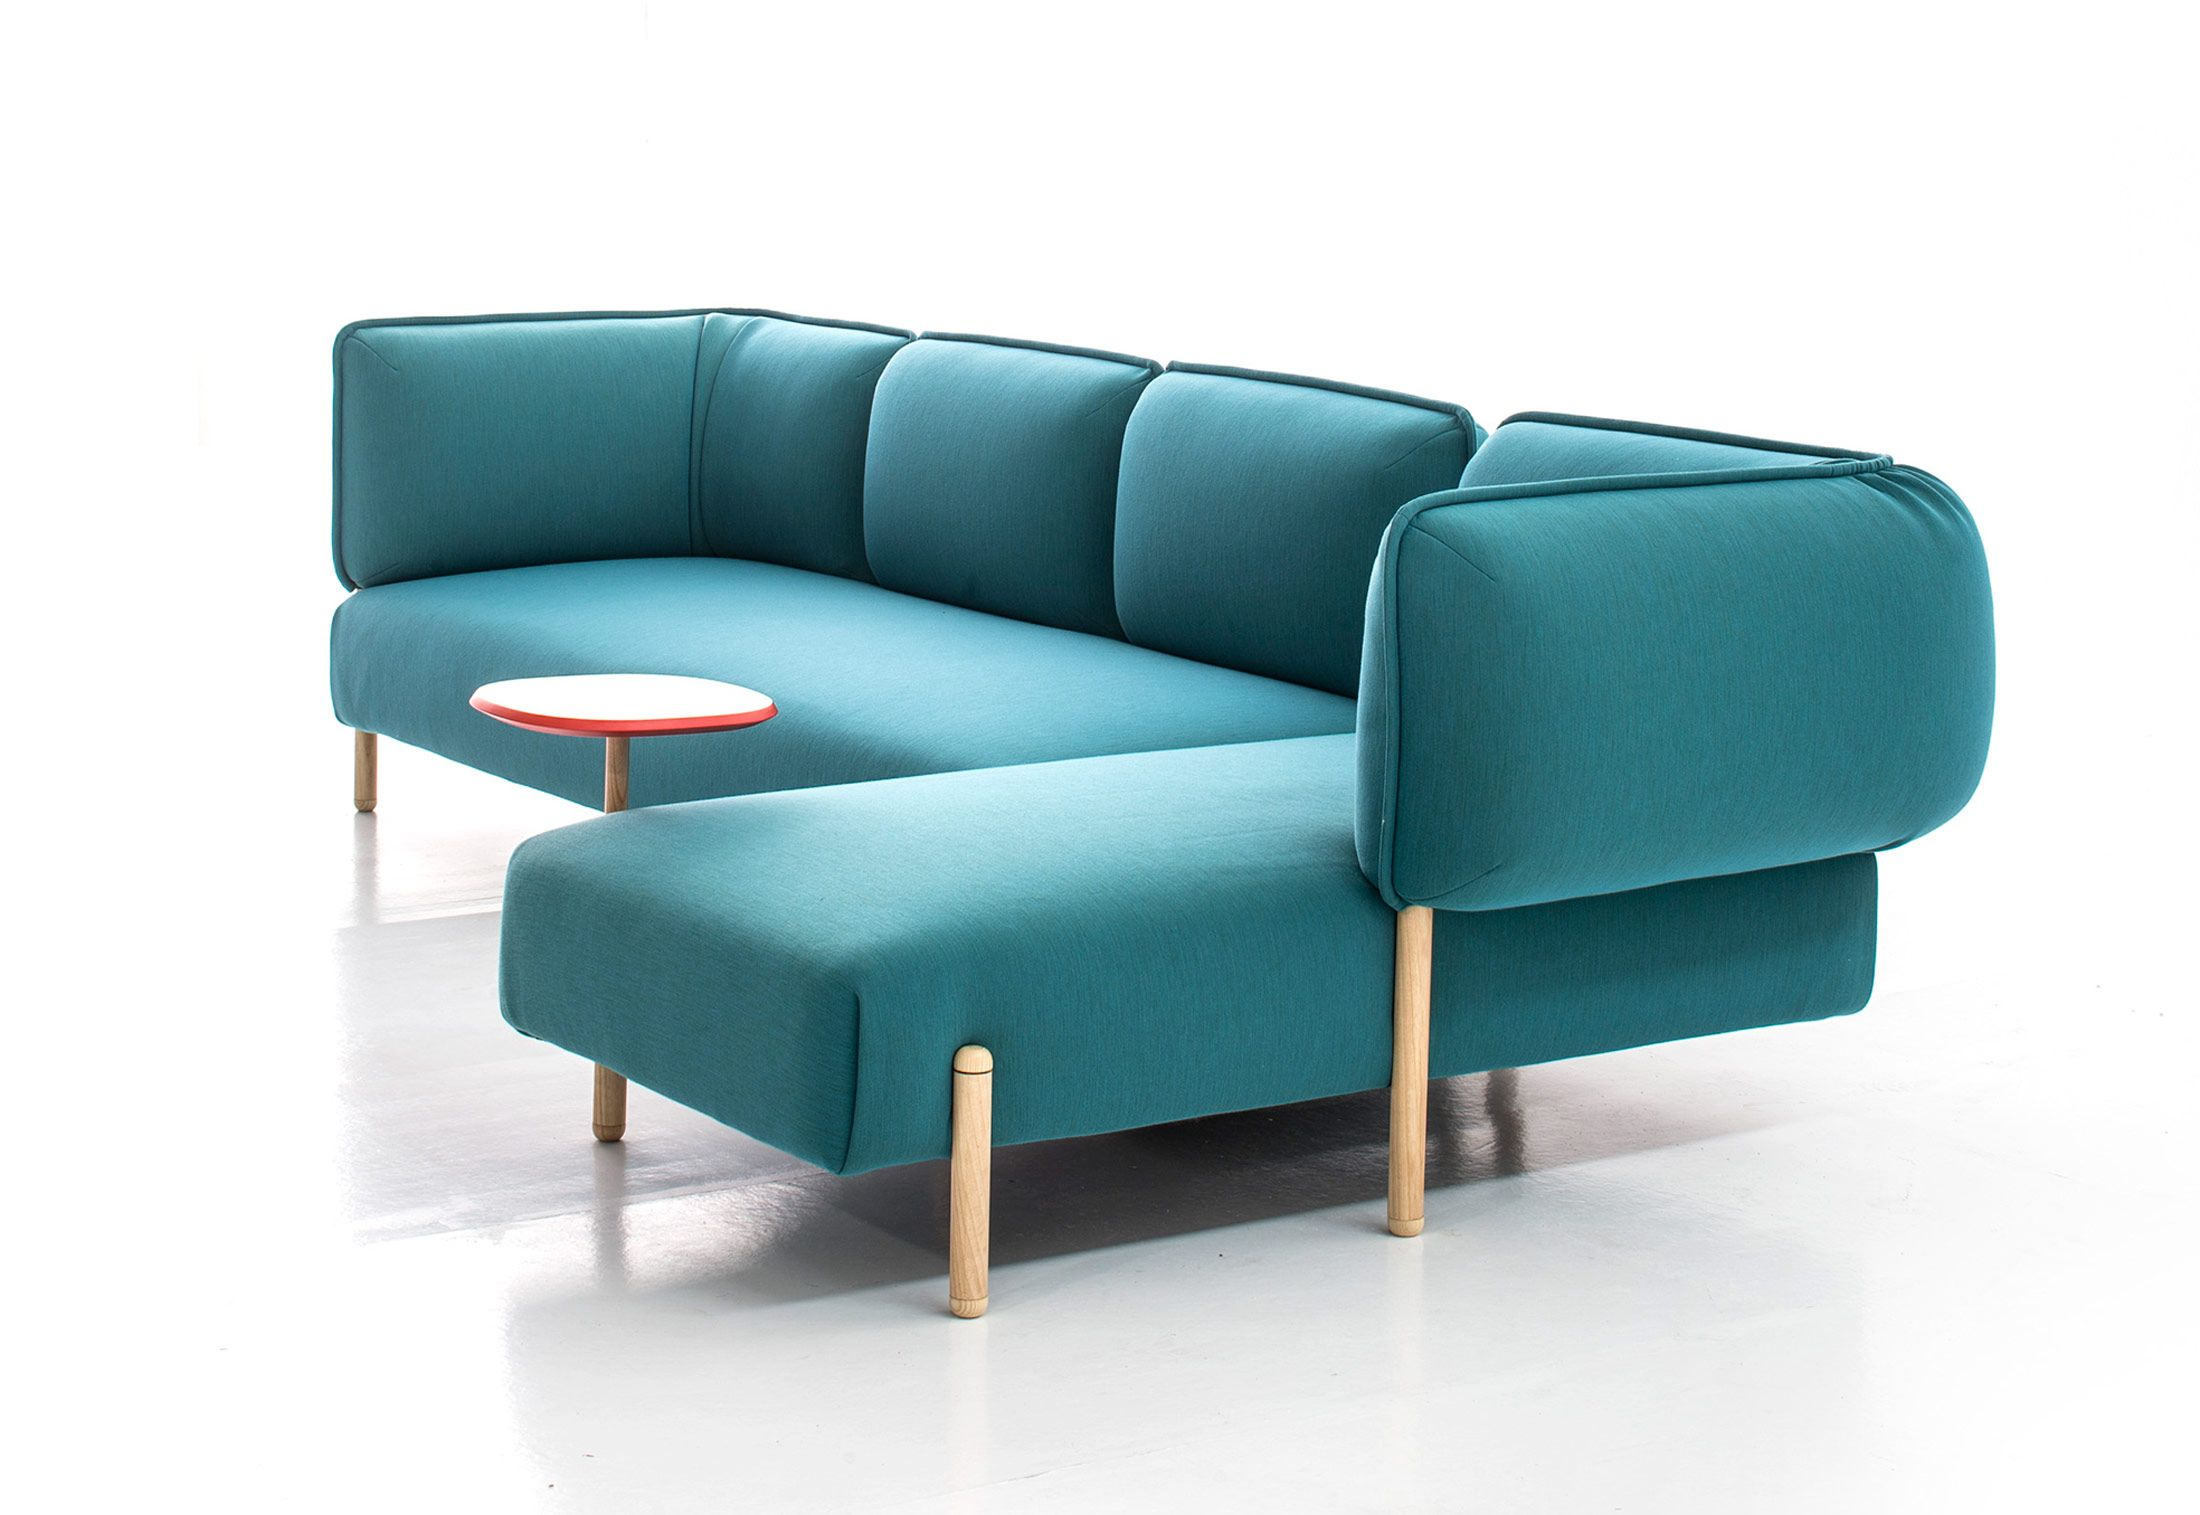 (Love Me) Tender Turquoise Sectional Sofa By Patricia Urquiola For Moroso.